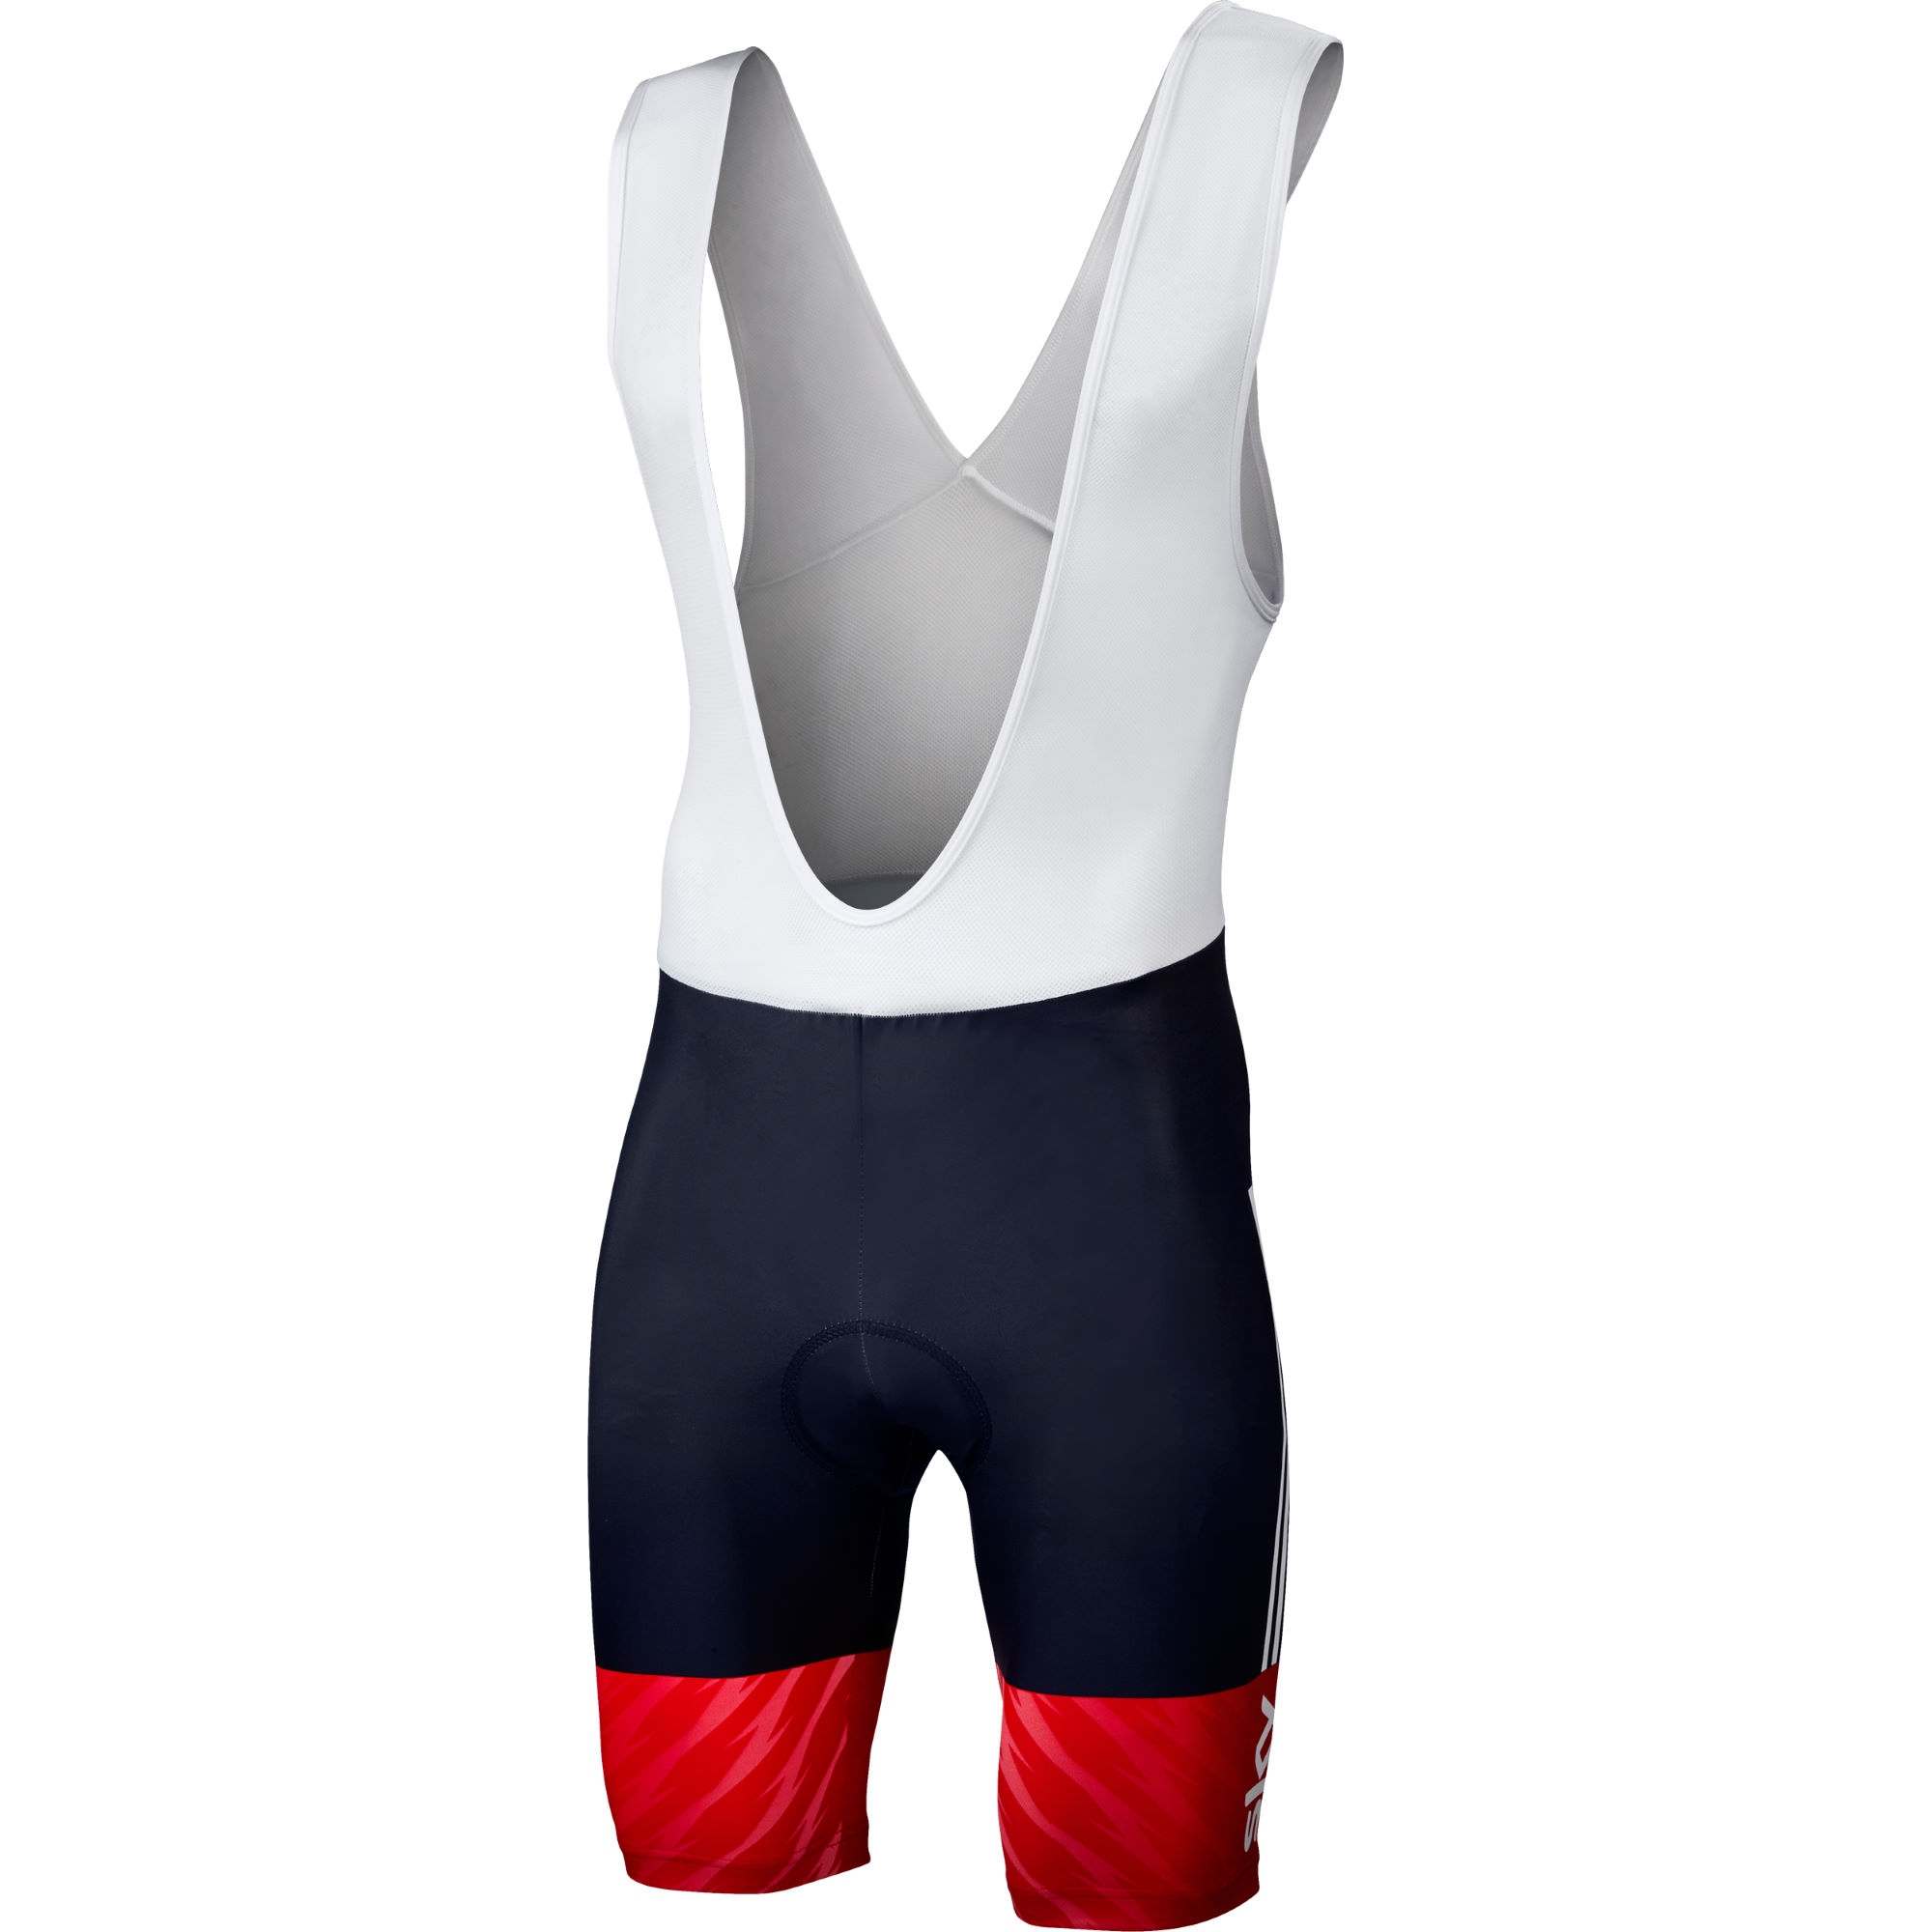 Wiggle | Adidas Cycling British Cycling Bib Shorts